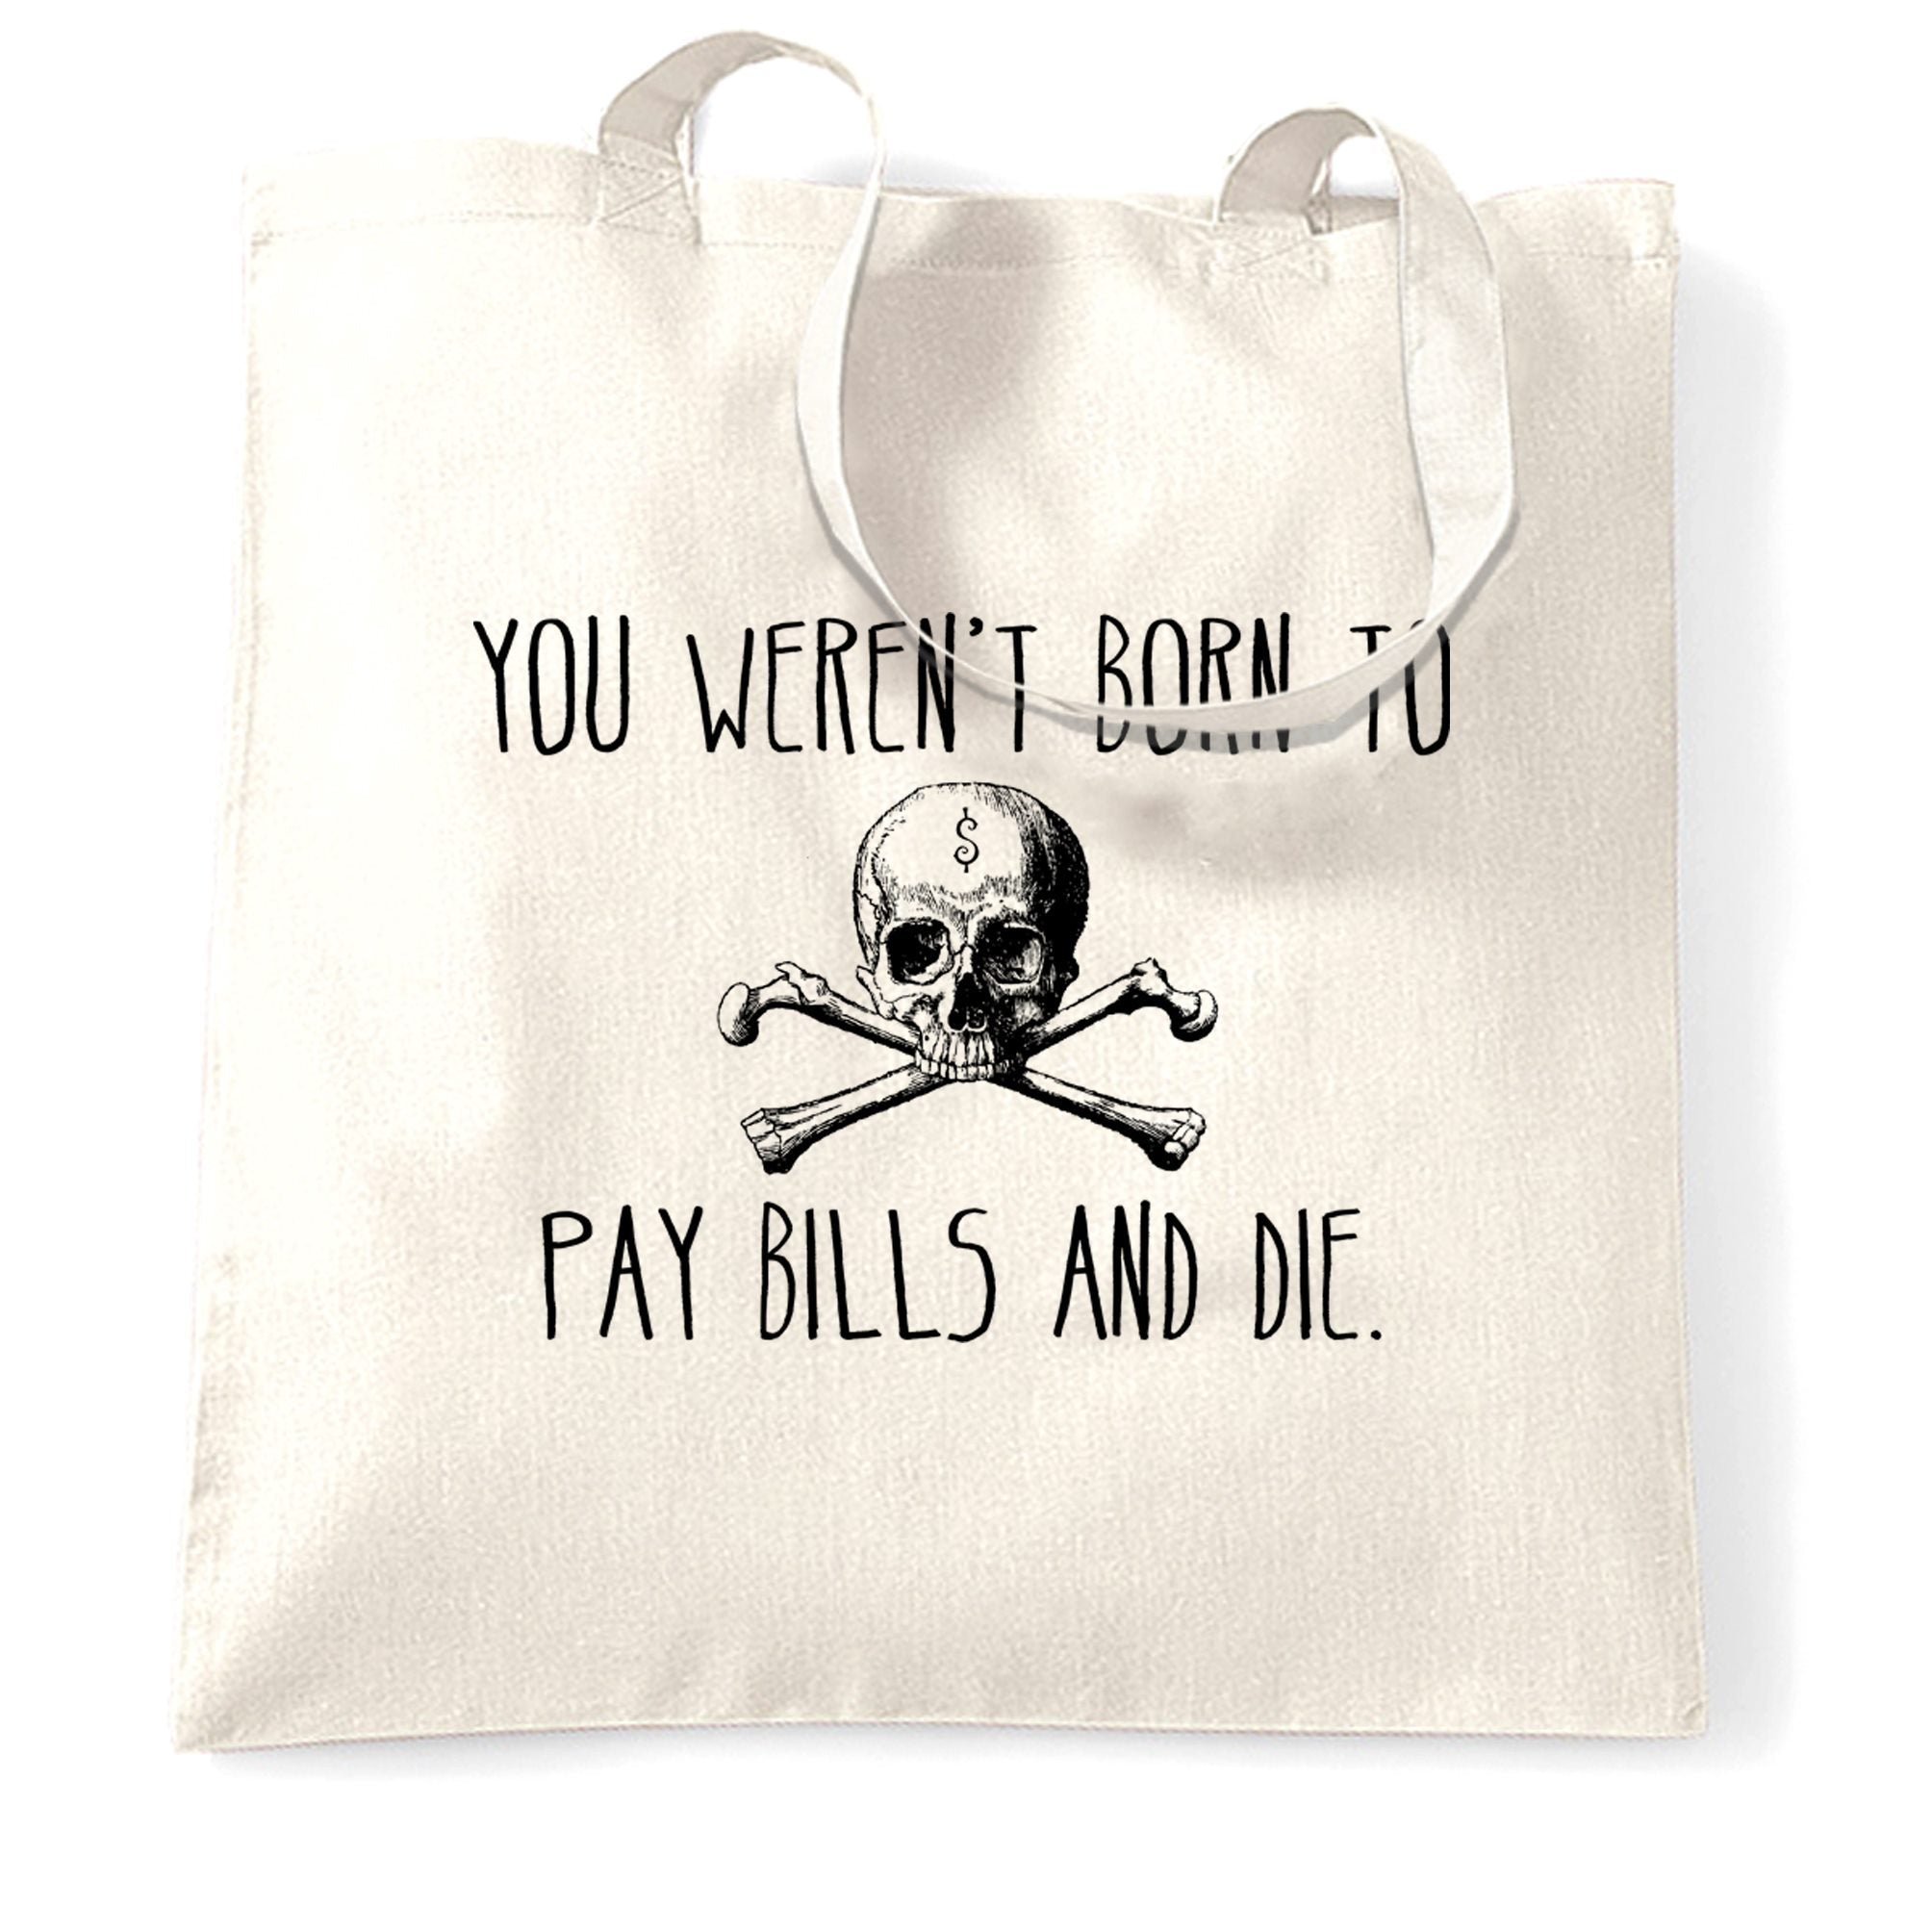 Motivational Tote Bag You Weren't Born To Pay Bills